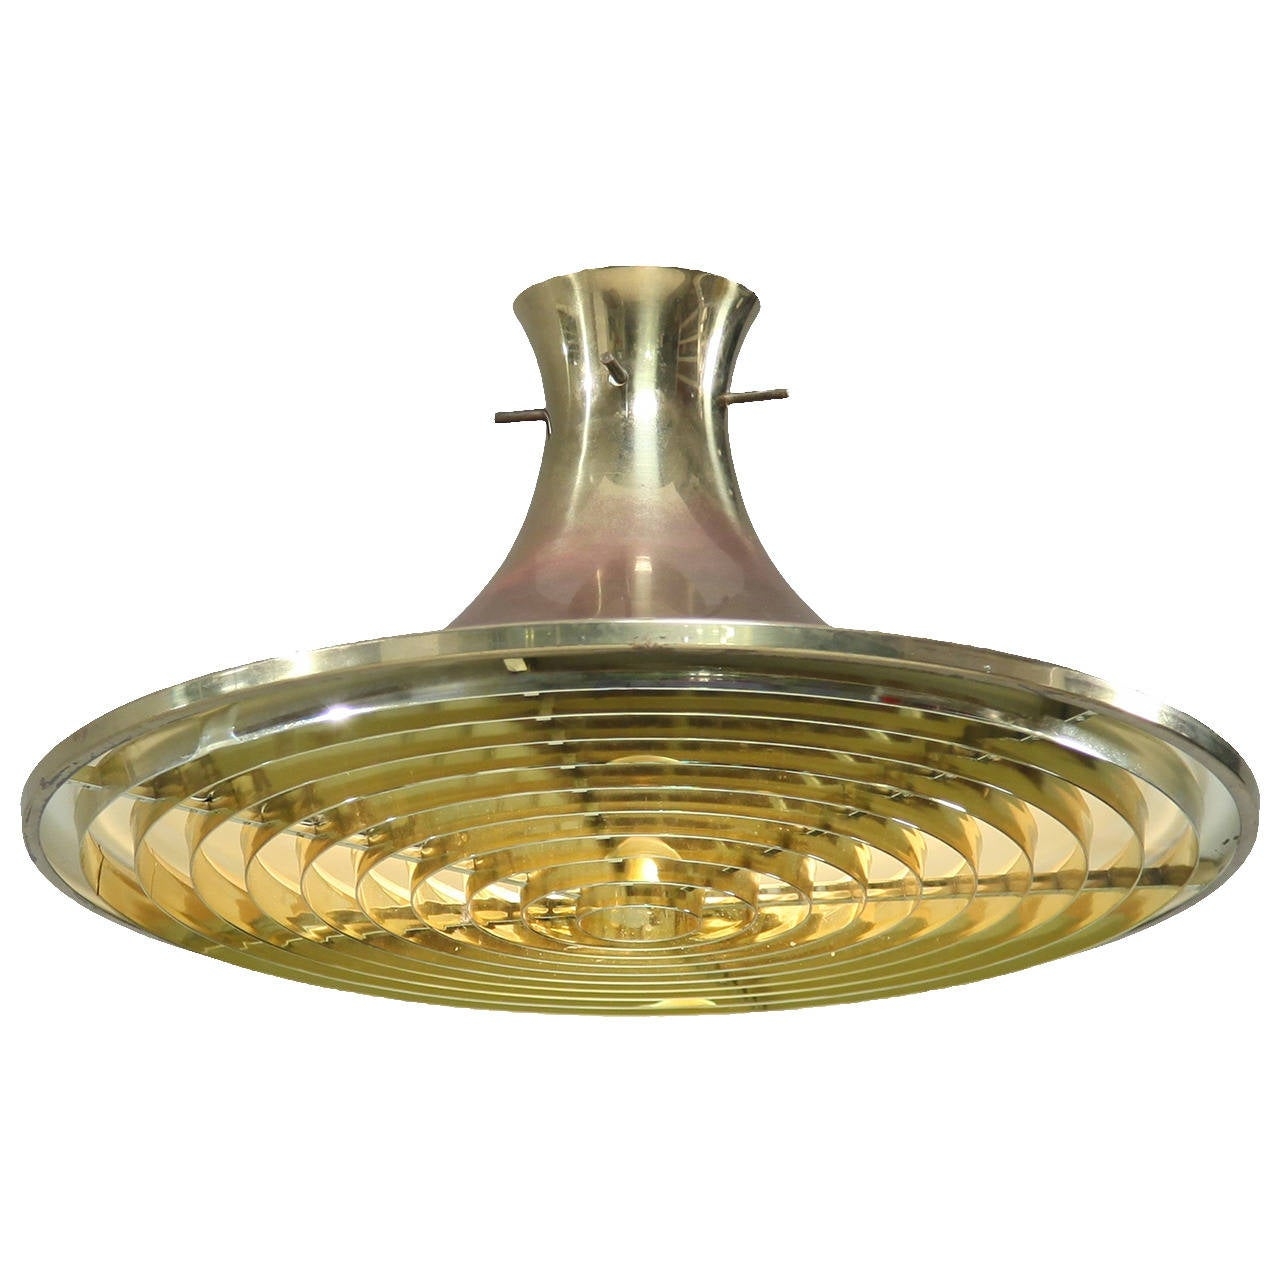 Brass hans agne jakobsson ceiling lamp for sale at 1stdibs brass hans agne jakobsson ceiling lamp for sale mozeypictures Choice Image